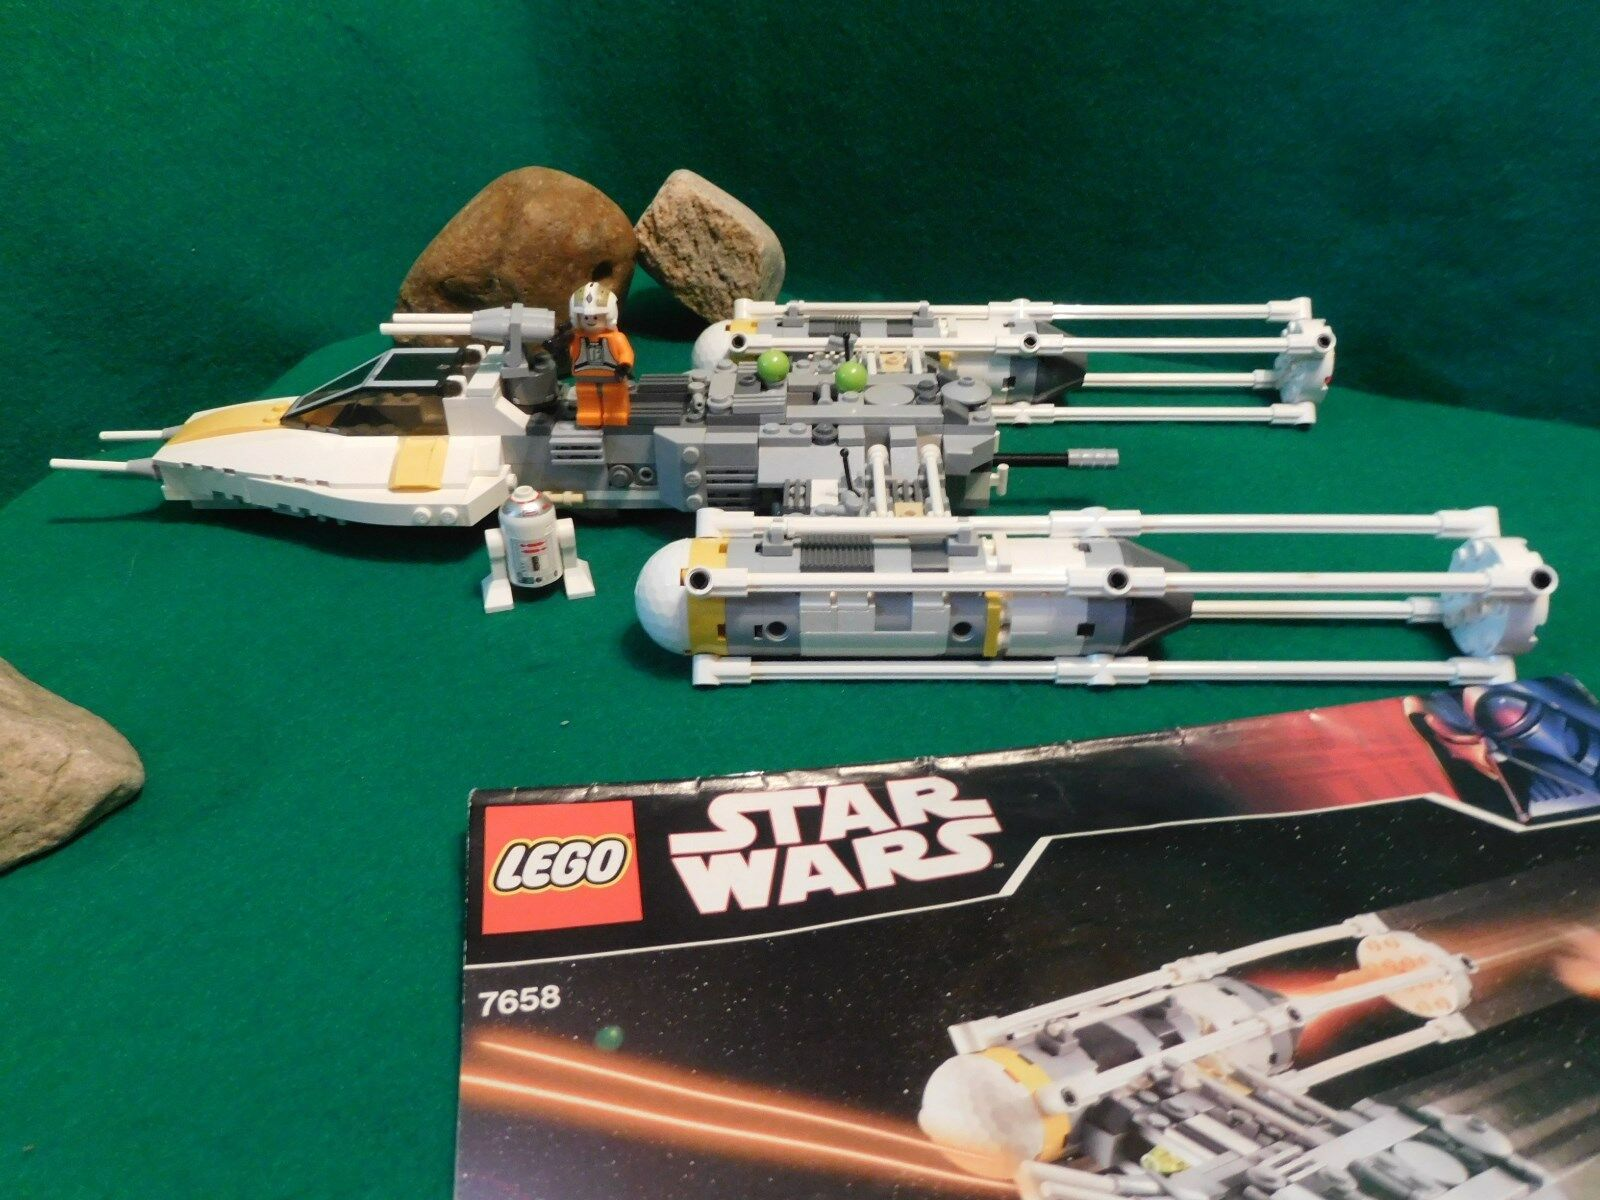 LEGO Star Wars 7658 - Y-wing fighter von 2007 mit Bauplan komplett